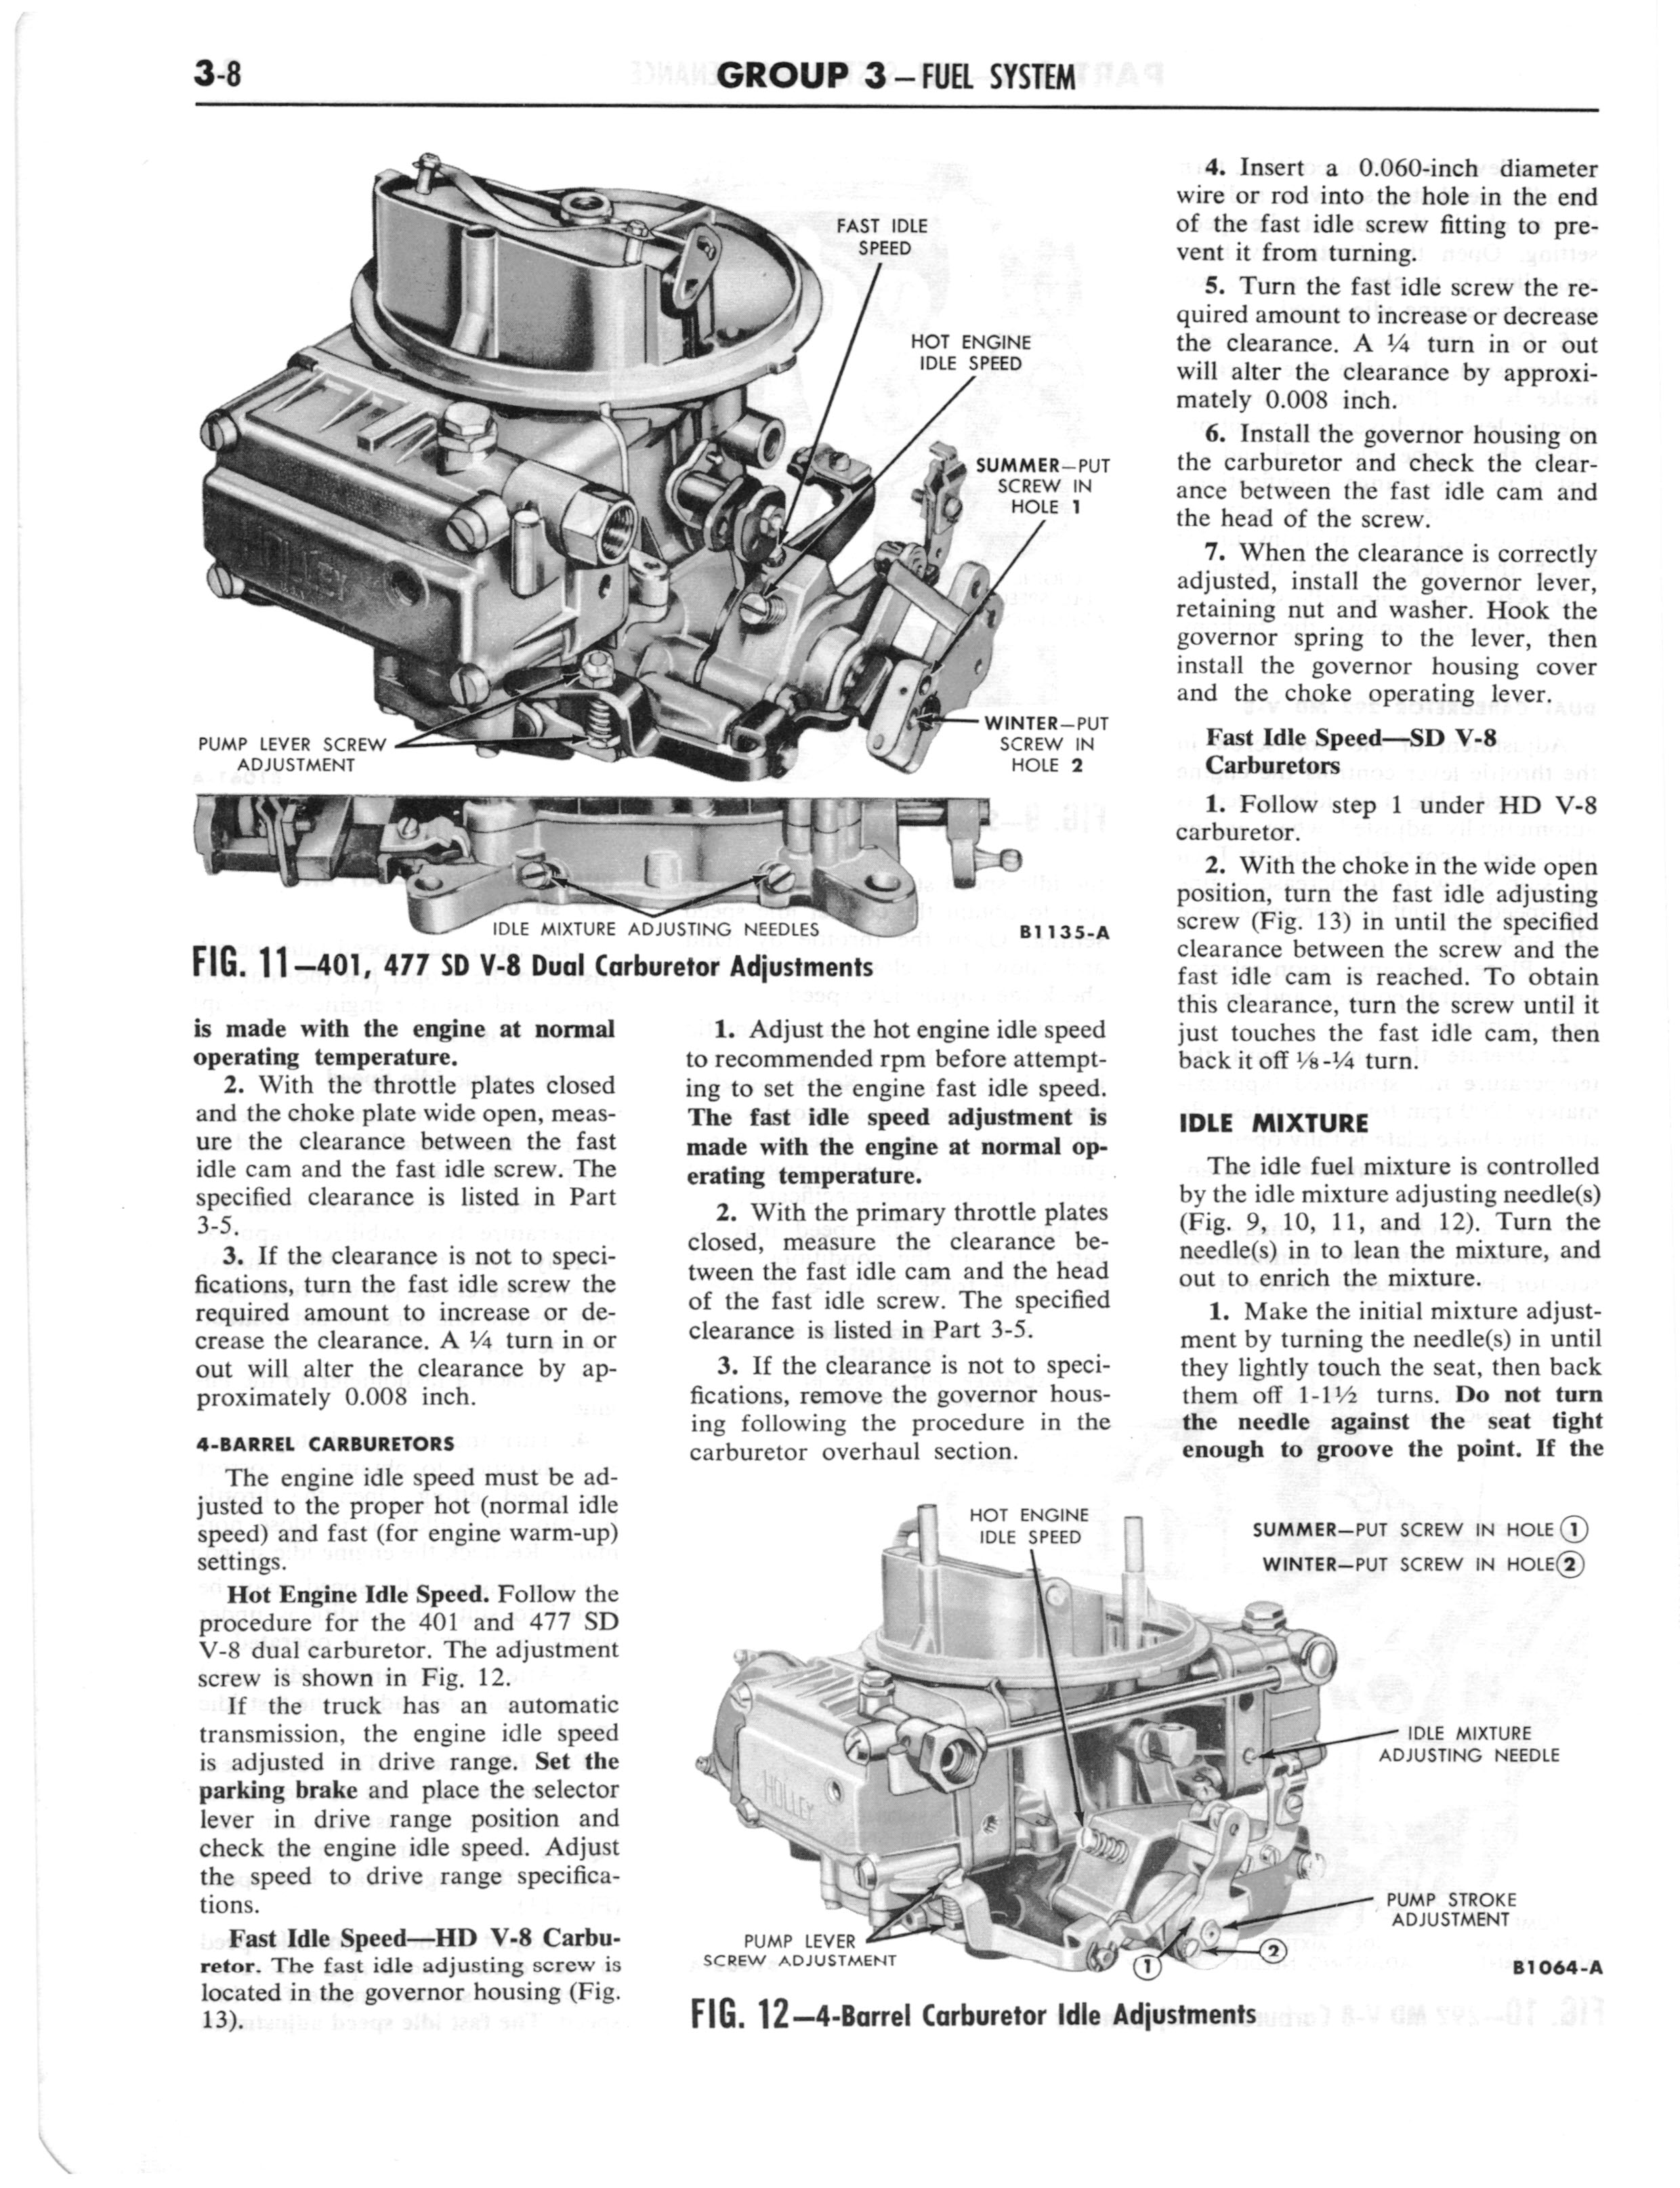 1960 Ford and Mercury Truck Shop Manual page 147 of 641